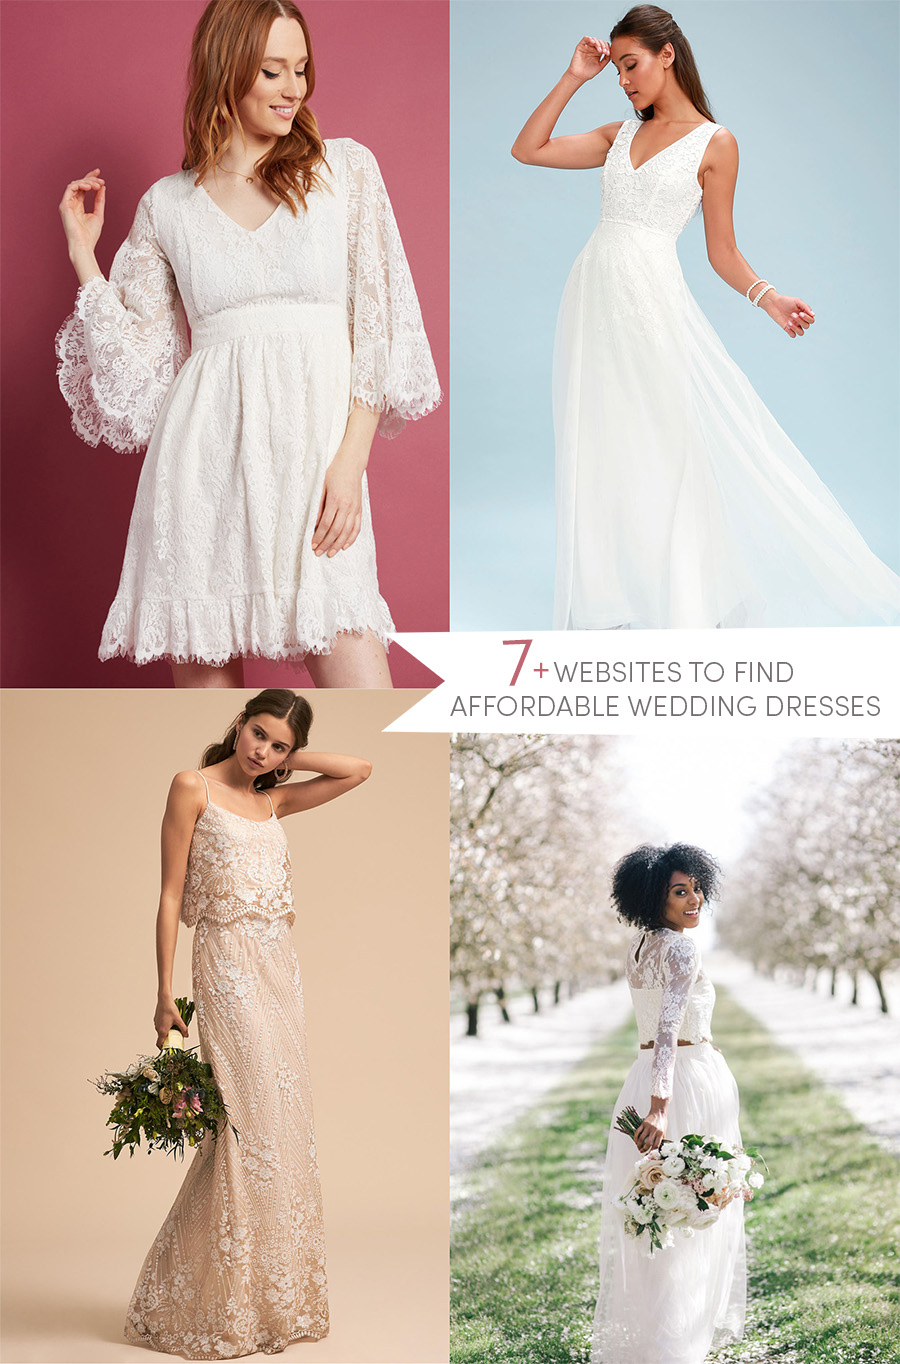 e9208bee9b5 7+ websites to find affordable wedding dresses! - THE DAINTY SQUID